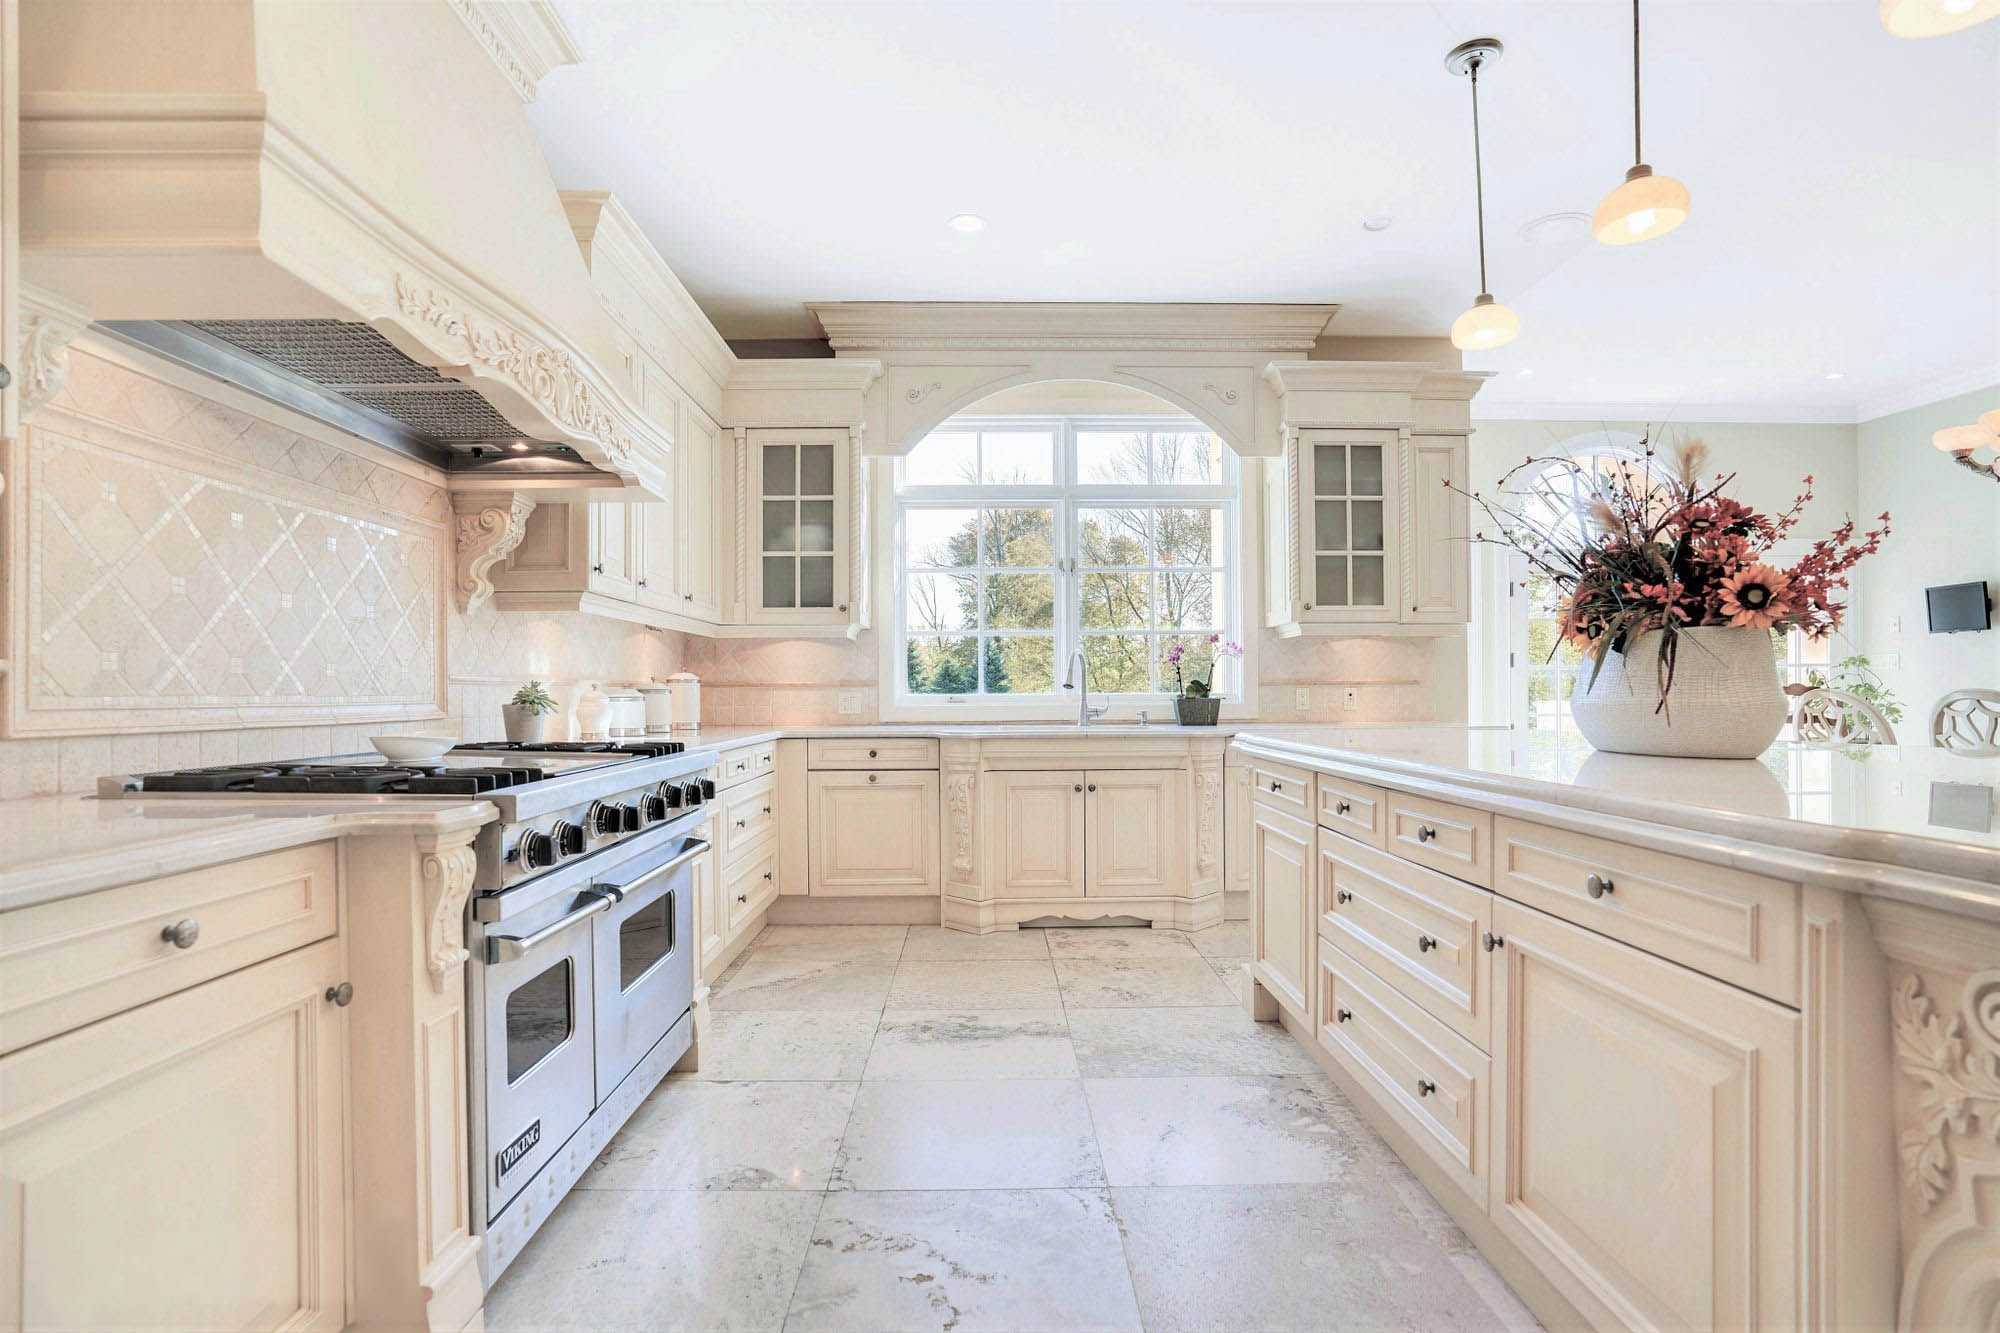 Viking Vs Wolf Ranges The Best High End Ovens Appliances In 2020 Cream Kitchen Cabinets Cream Kitchen Cream Colored Kitchen Cabinets